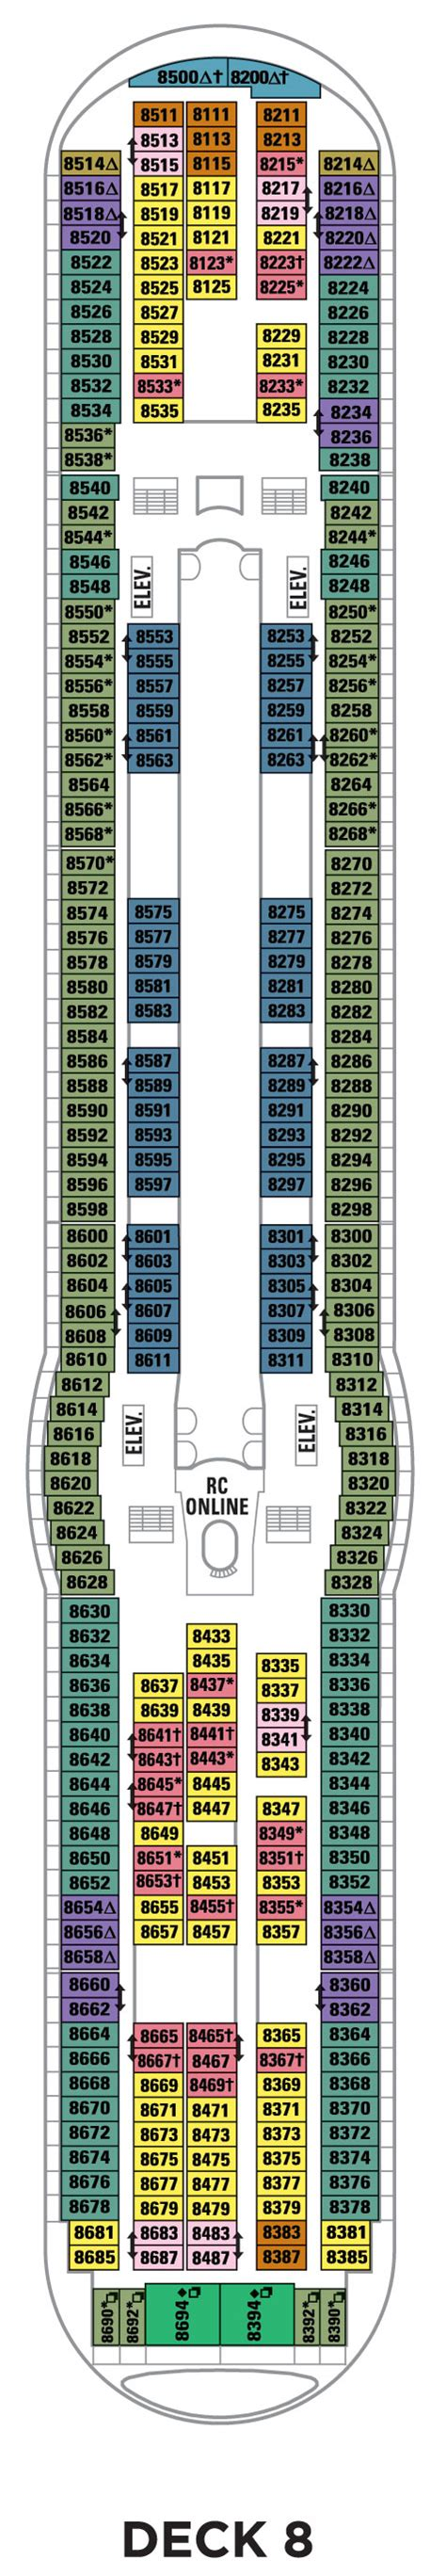 explorer of the seas floor plan deck 8 explorer of the seas deck plans royal caribbean